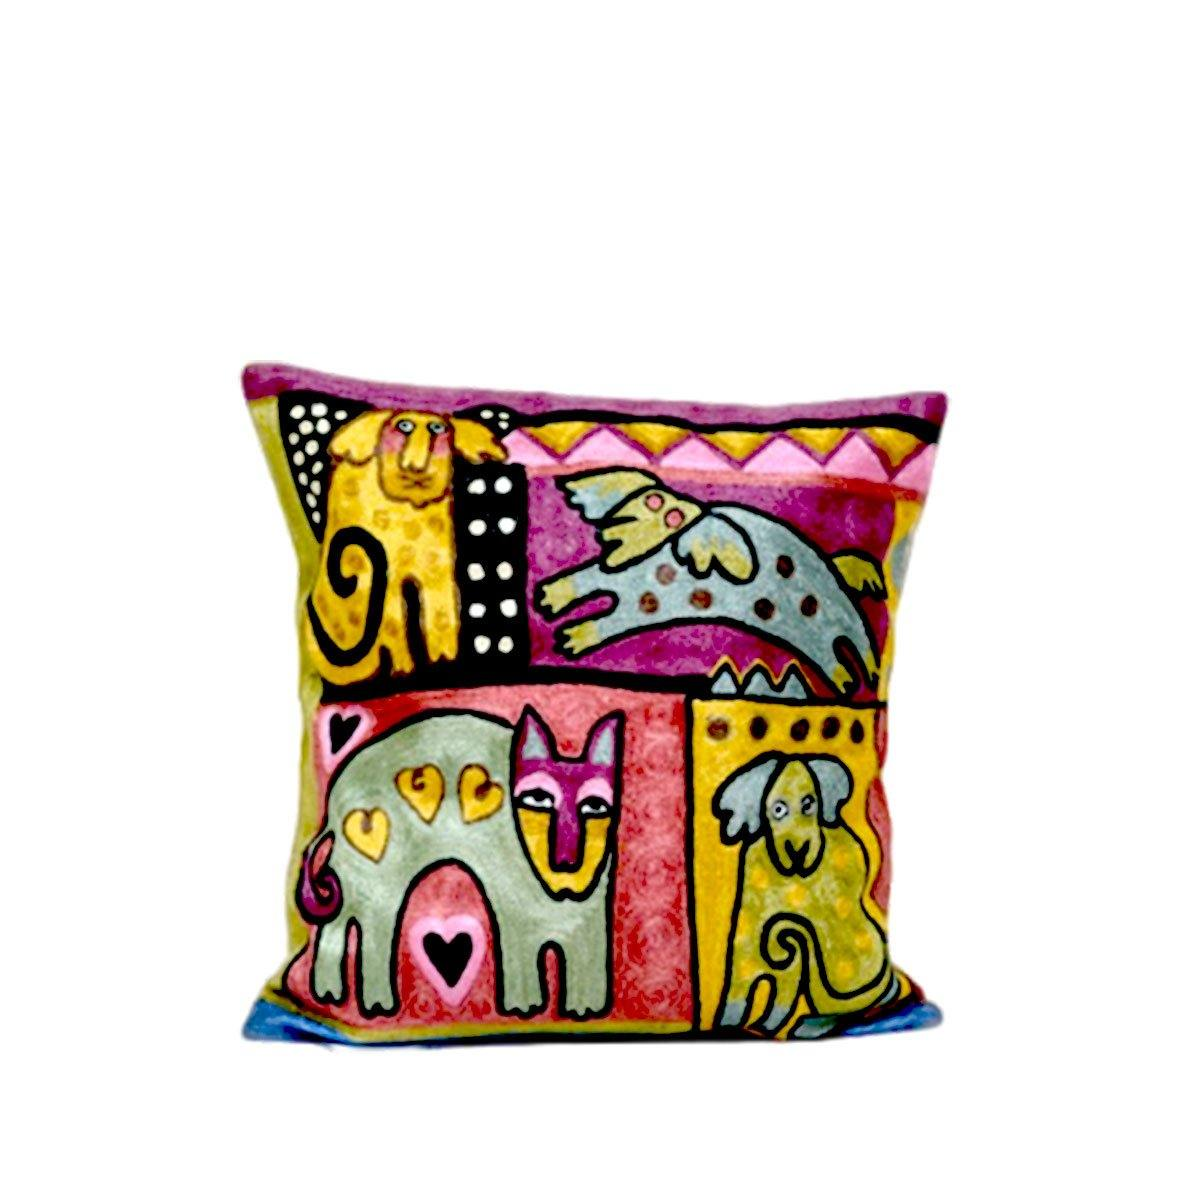 Touy Embroidery Cushions